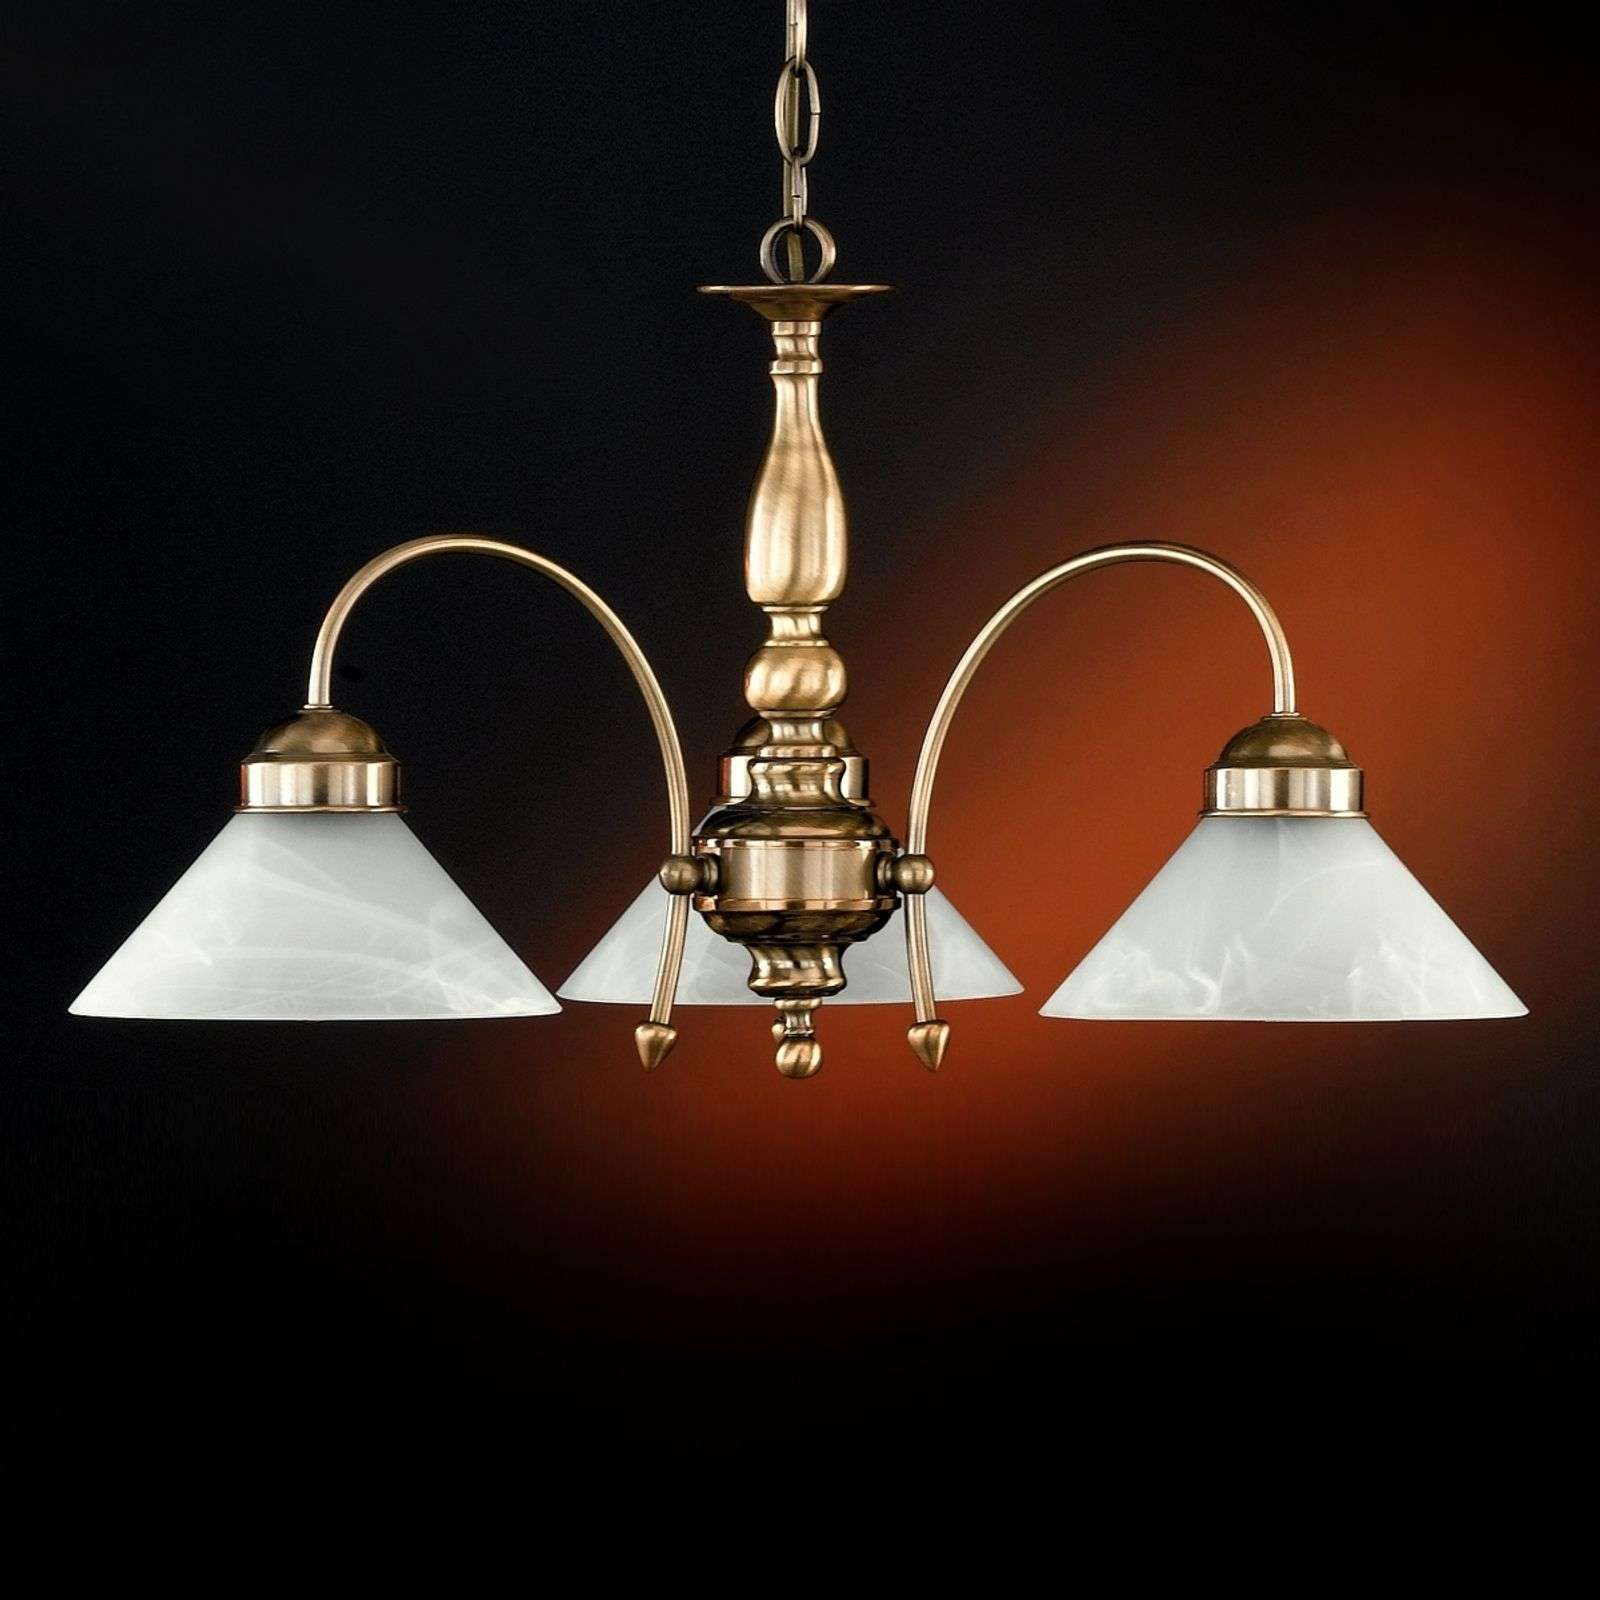 Suspension ANTWERPEN 3 lampes laiton antique